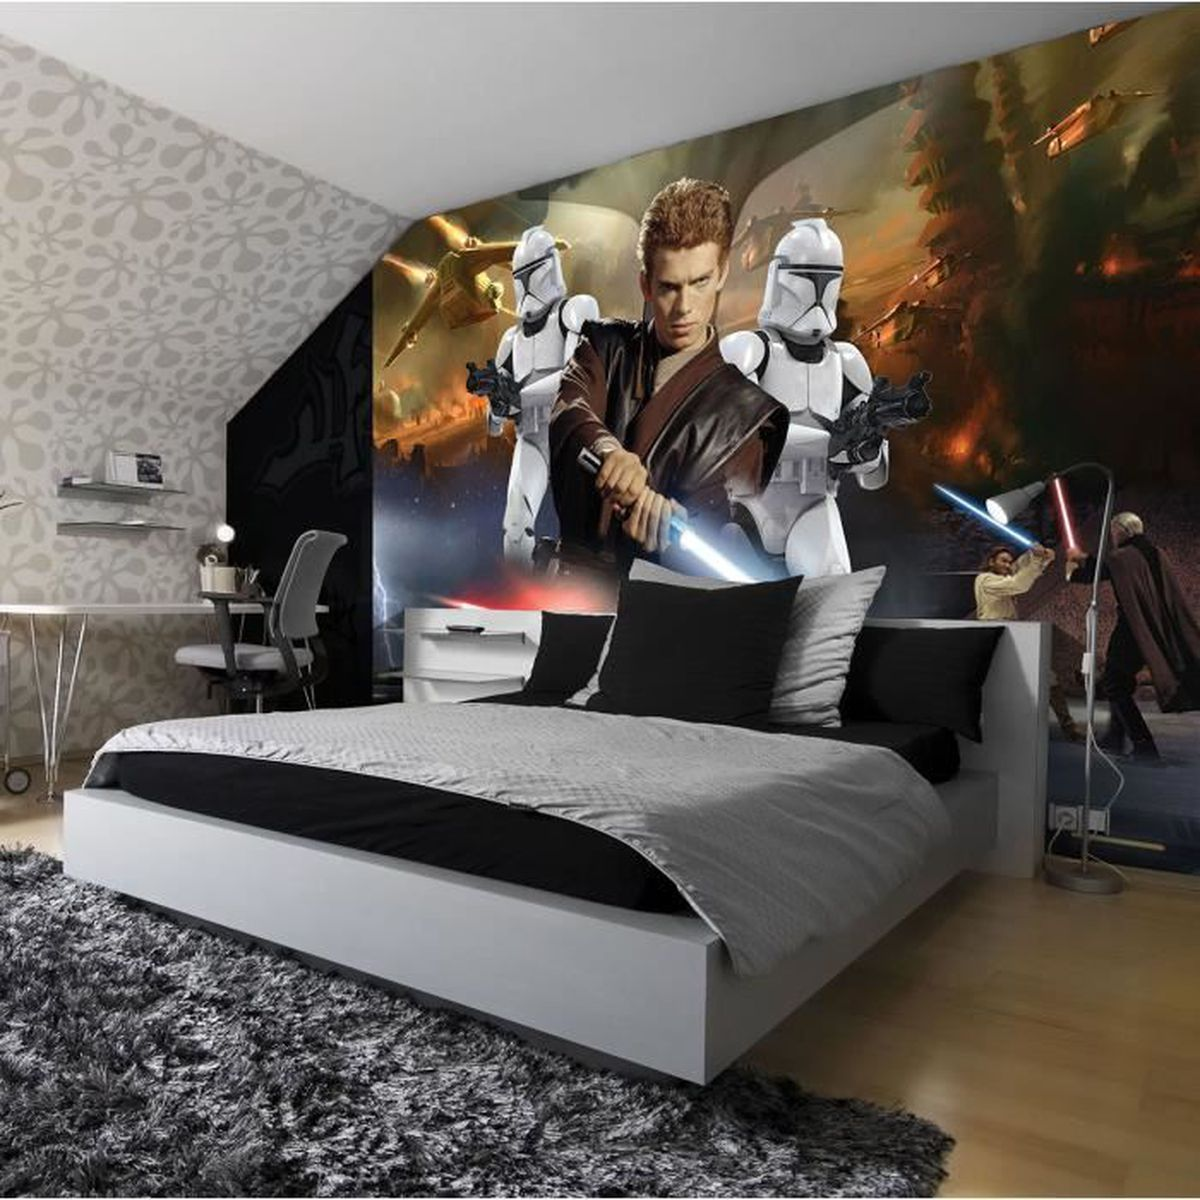 papier peint star wars 152 5 x 104 cm fresque murale attack of the clones achat vente. Black Bedroom Furniture Sets. Home Design Ideas